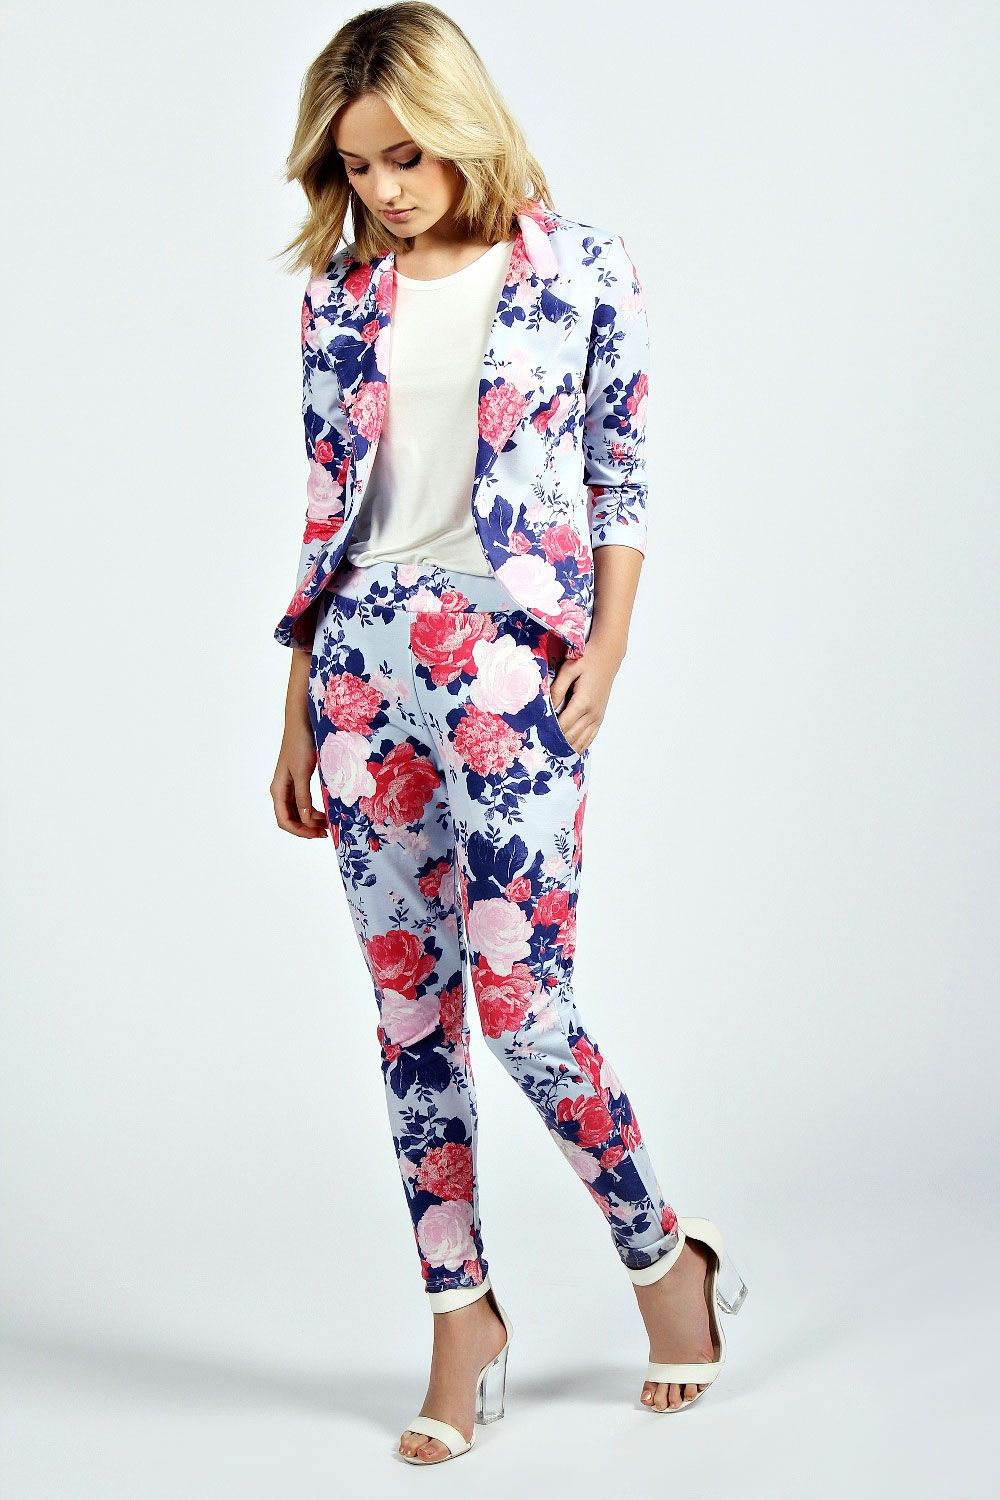 b5922933872e6 Lola Floral Blazer And Trouser Suit at boohoo.com | DΛT LOOK THO ...